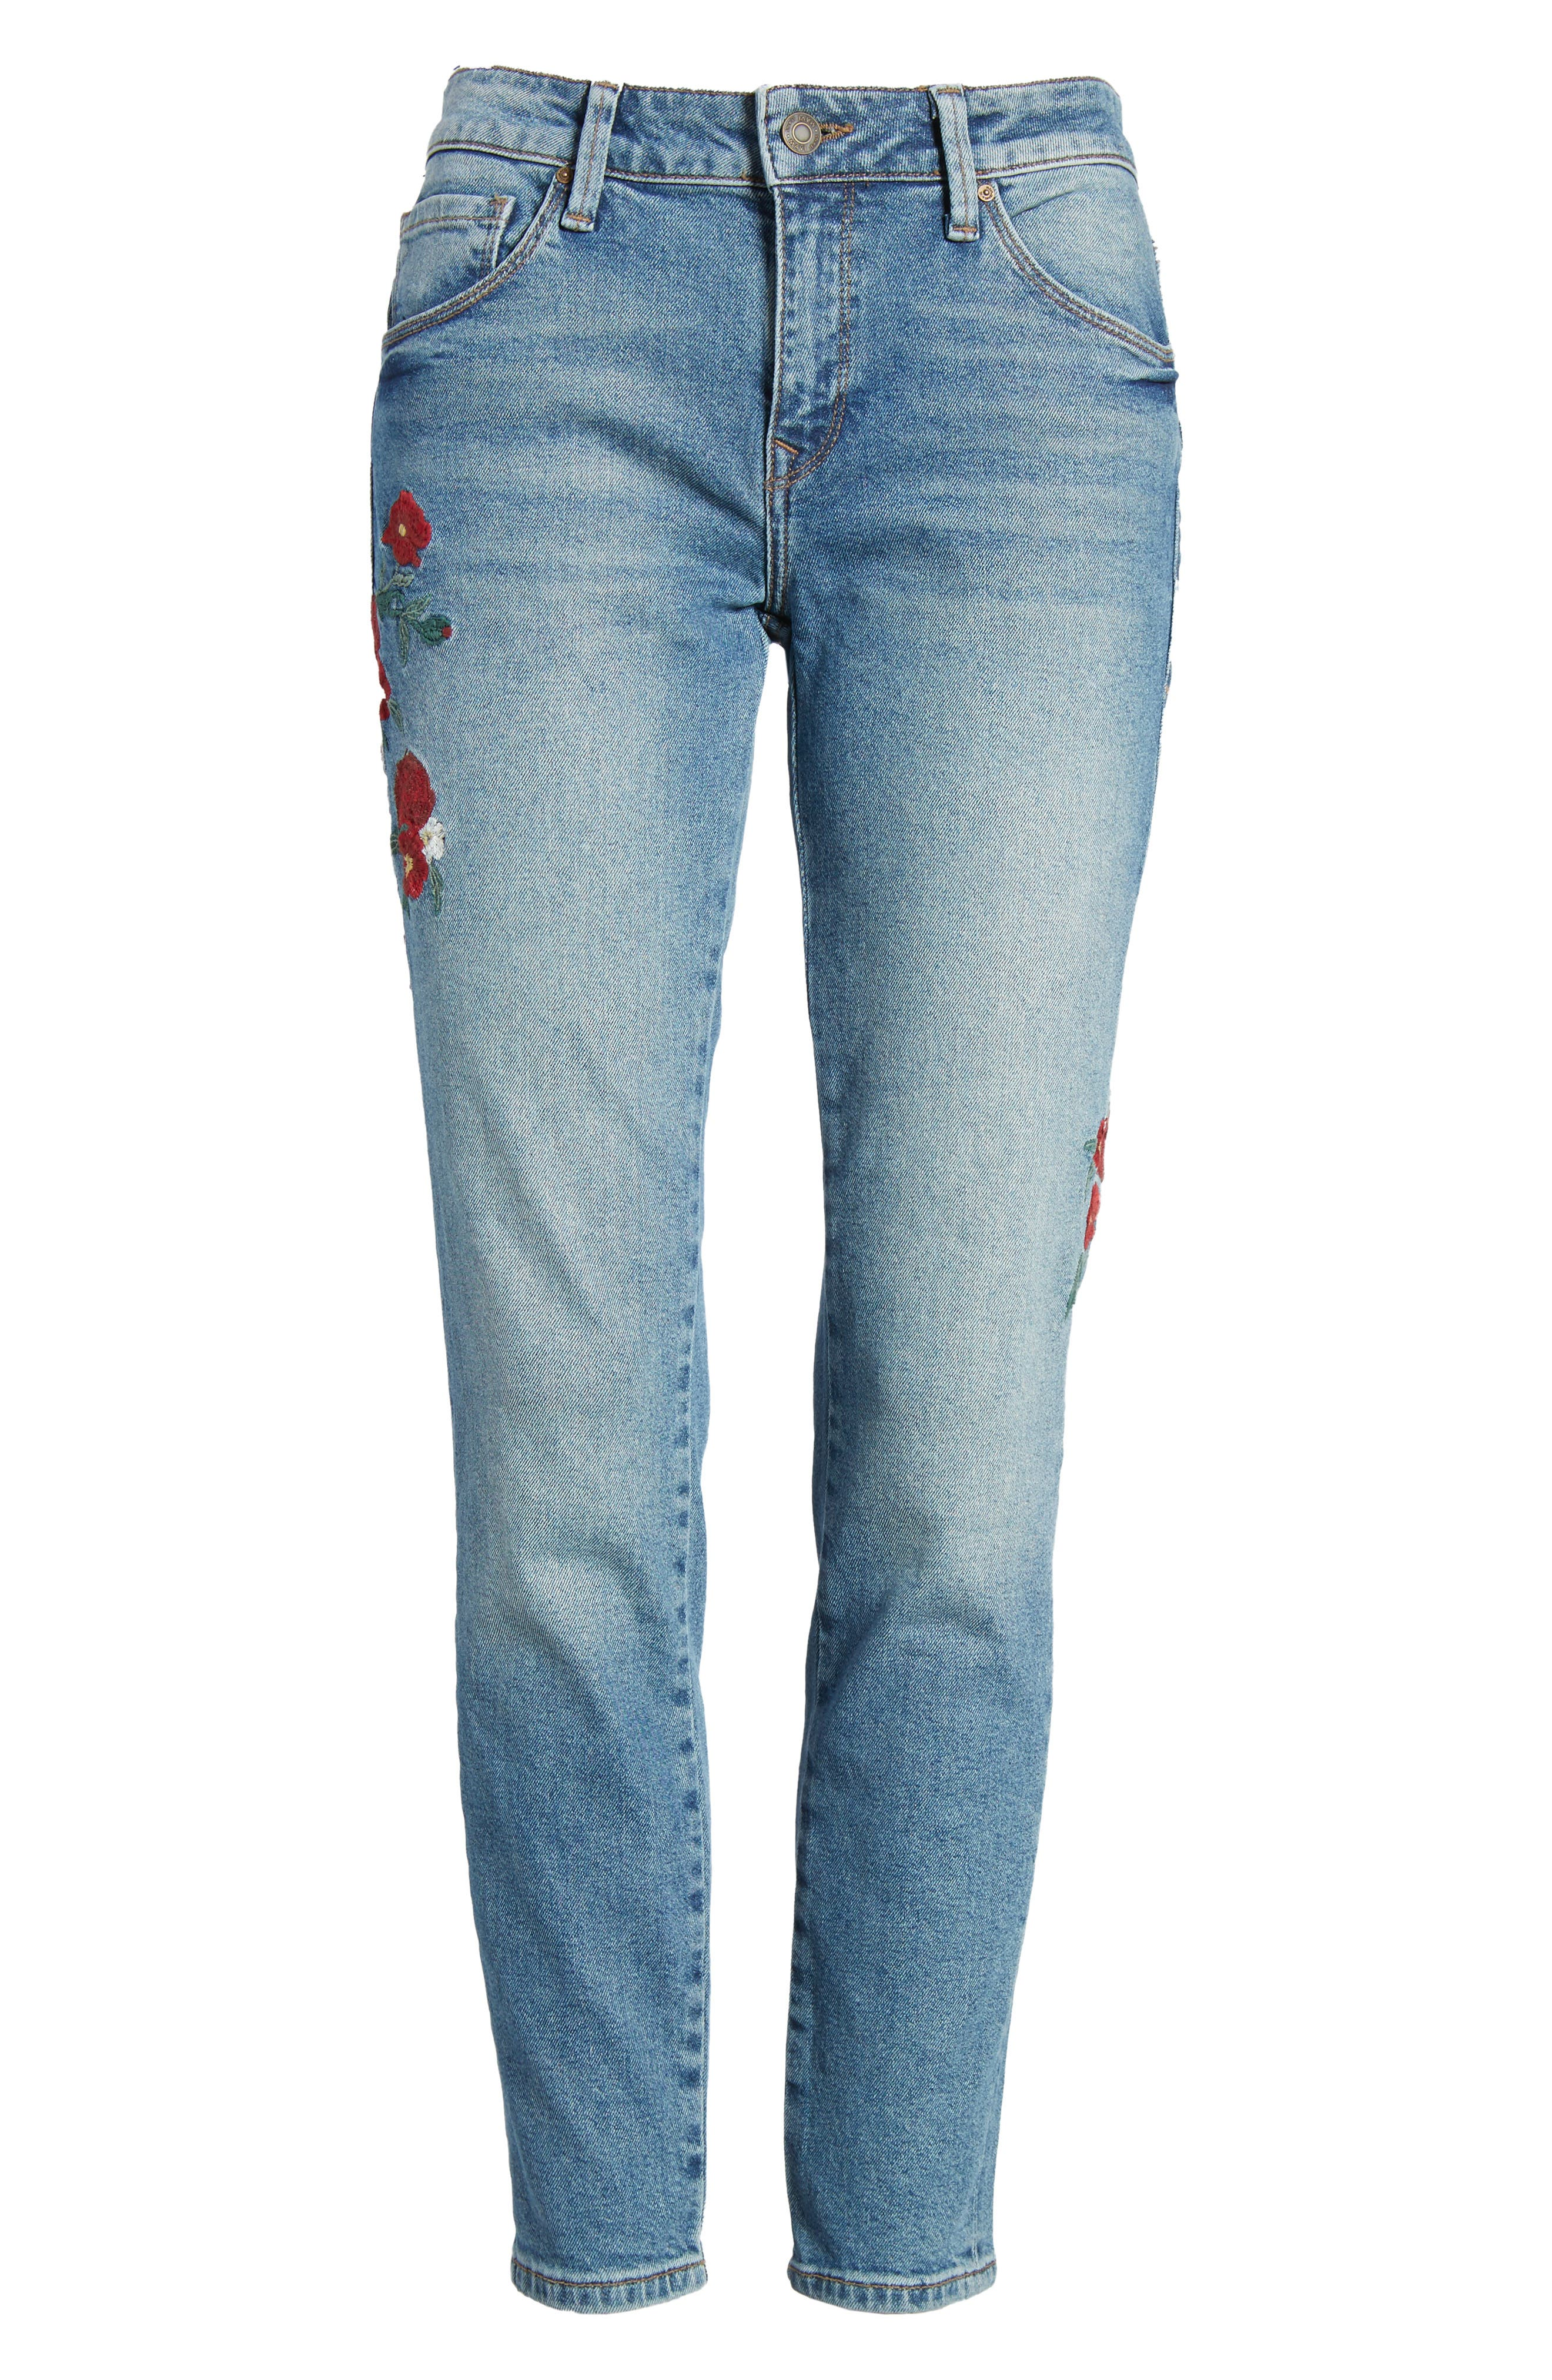 Adriana Embroidered Ankle Skinny Jeans,                             Alternate thumbnail 6, color,                             420